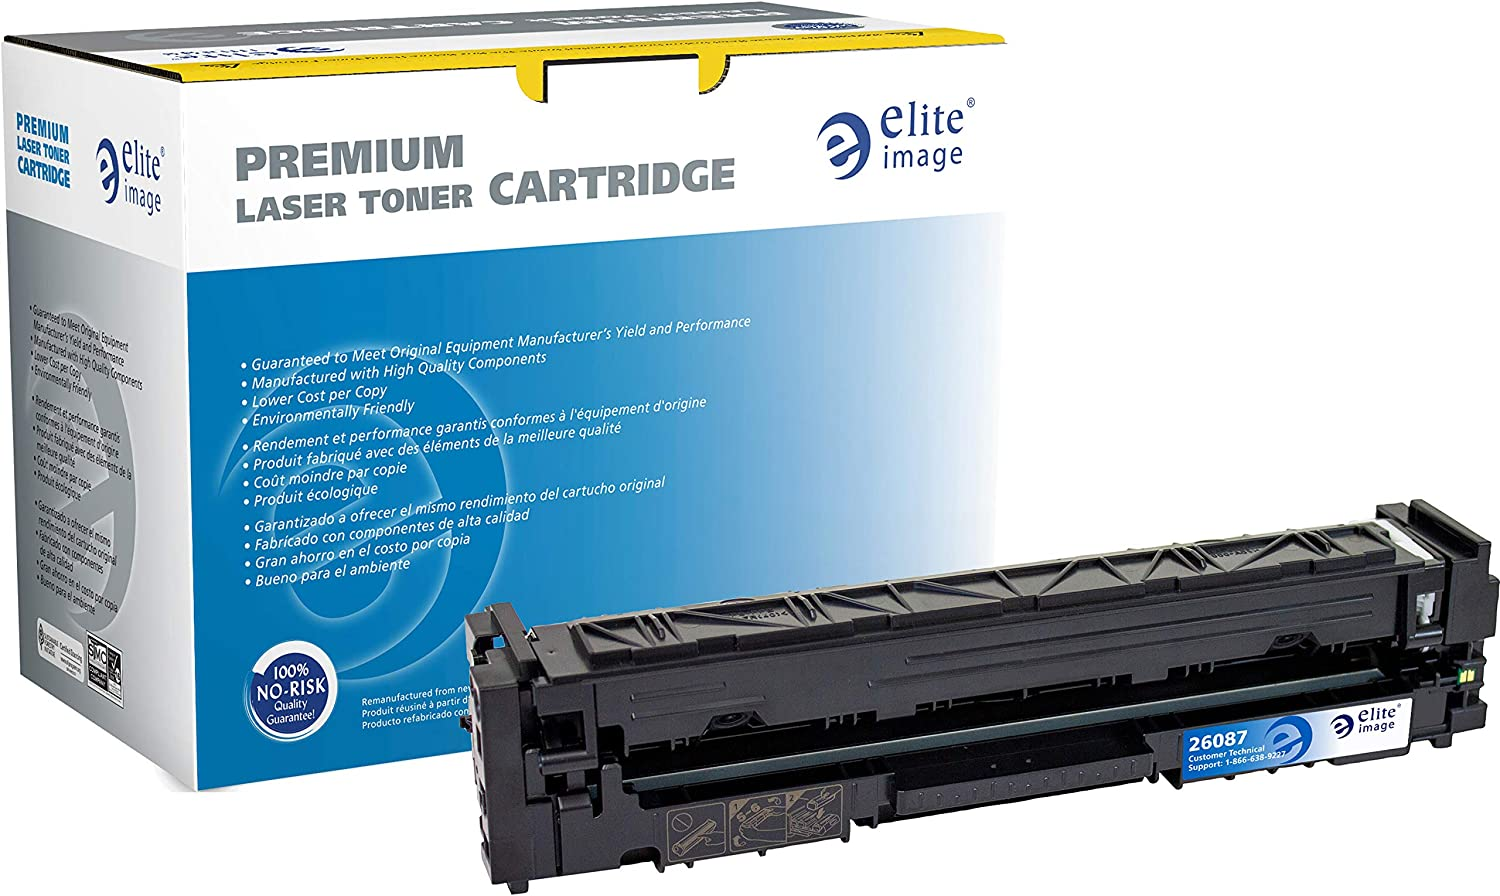 Elite Image Special Campaign Toner Cartridge - Free shipping anywhere in the nation 202A HP Cyan for Alternative